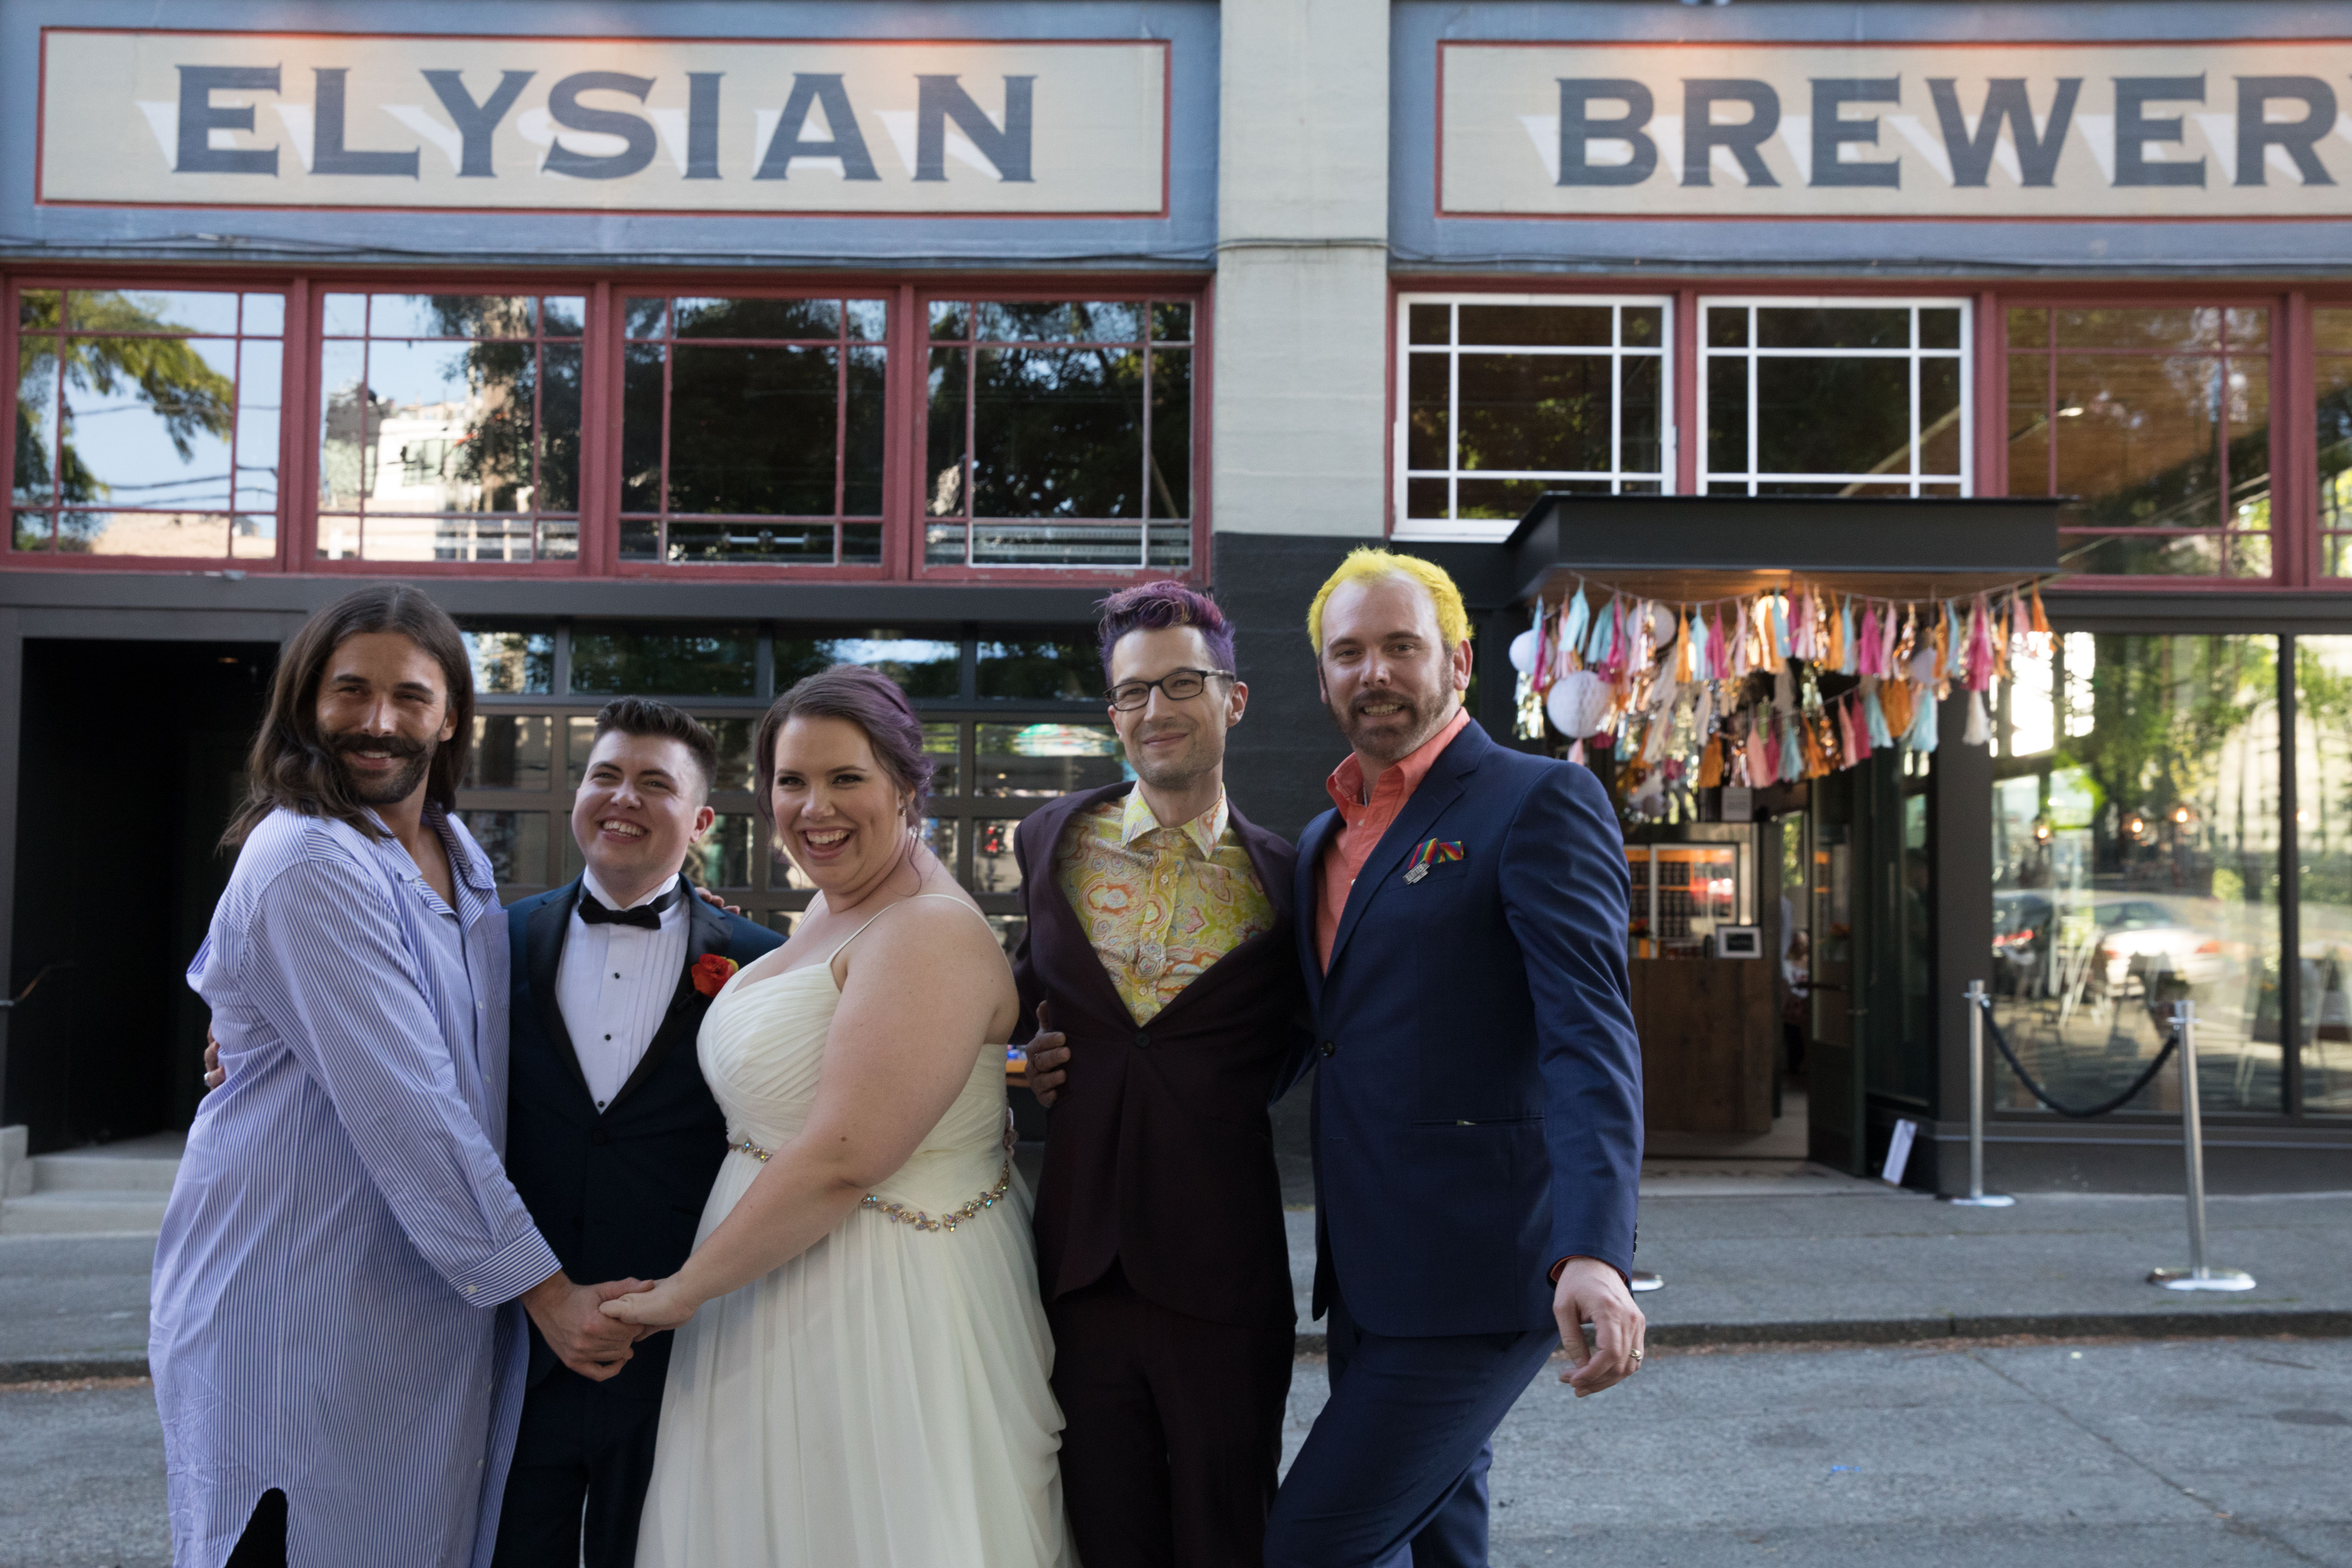 CAN YOU EVEN BELIEVE?!{ } Jonathan Van Ness (left) poses with #MarryUsVJN contest winner newlyweds, Megan (middle) and Haden (middle-left), and plaintiffs of the Masterpiece Cakeshop Supreme Court case, Charlie (right) and David (middle-right), at Elysian Brewing's Capitol Hill brewpub in Seattle on June 4, 2019.(Photo by Matt Mills McKnight/Invision for Elysian Brewing/AP Images)